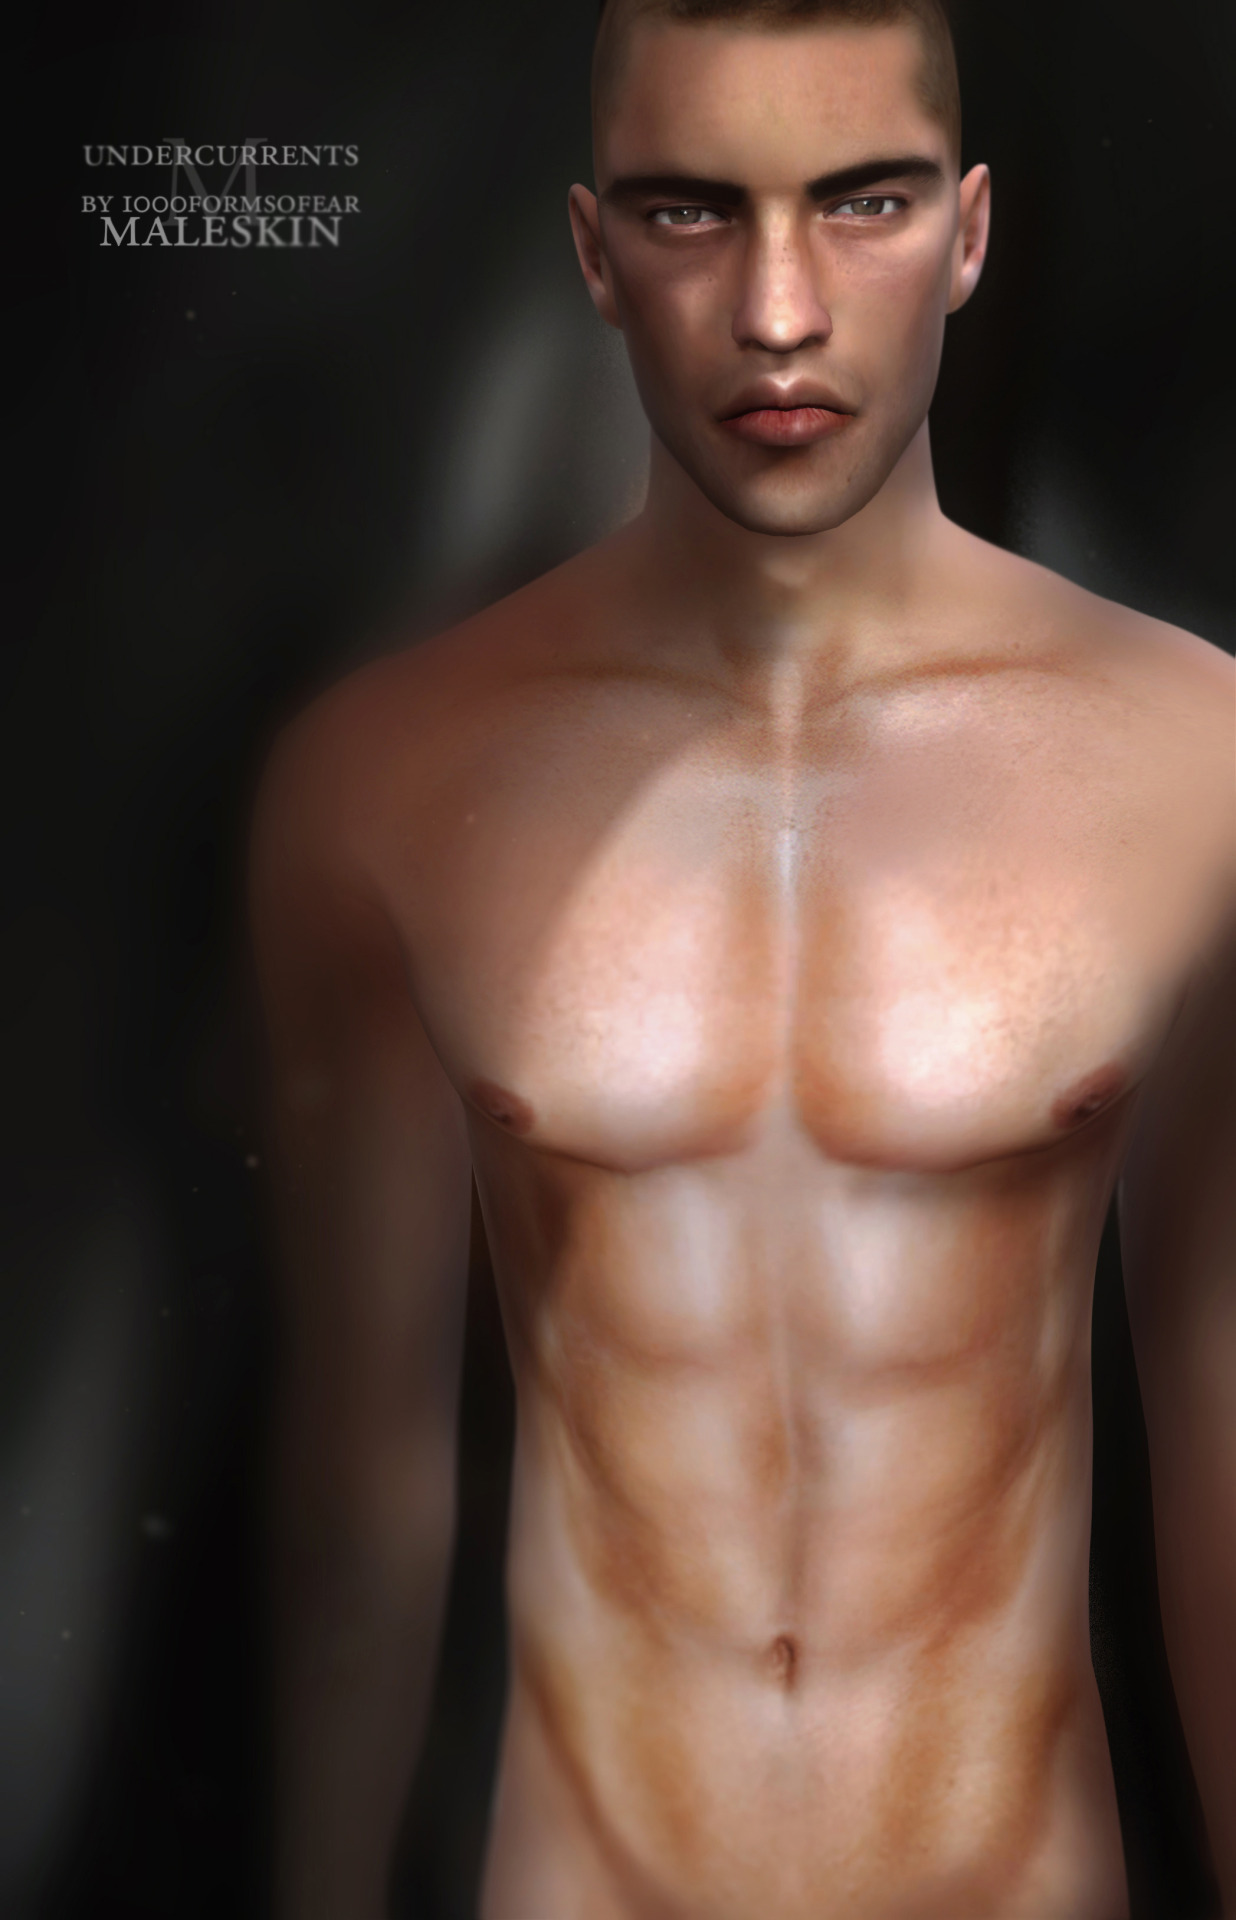 Undercurrents Skin for Males by 1000FormsOfFear